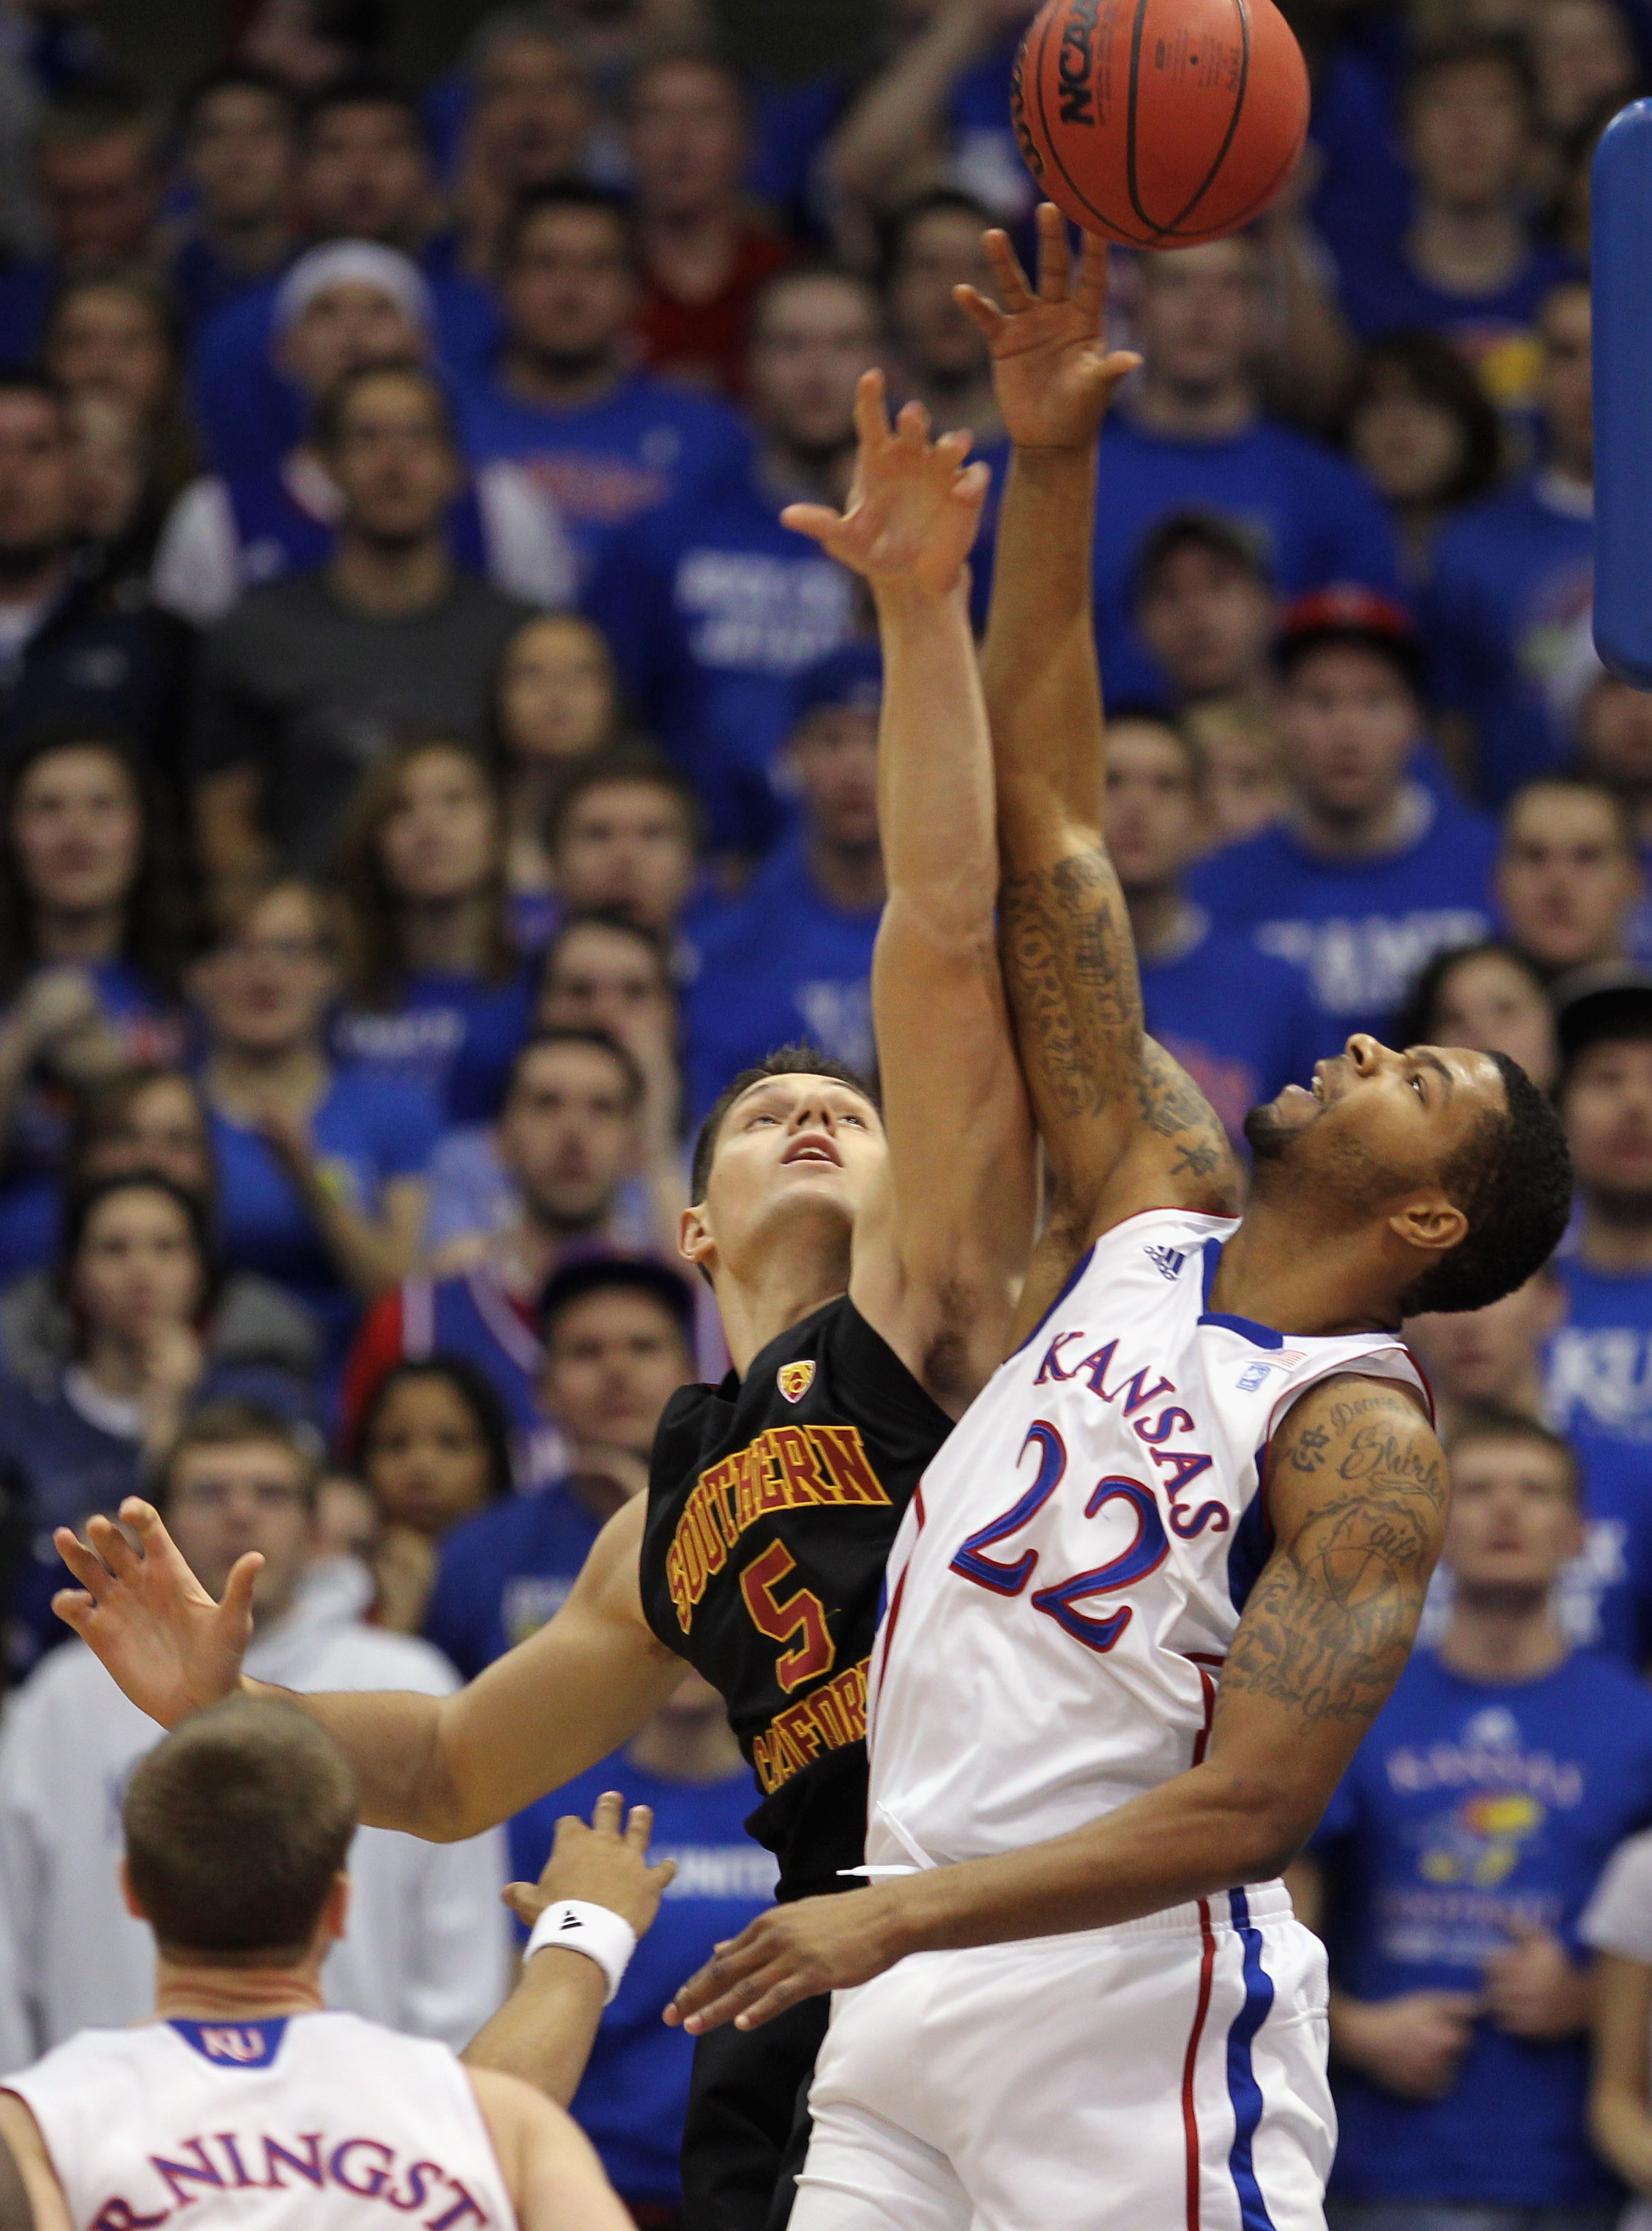 LAWRENCE, KS - DECEMBER 18:  Marcus Morris #22 of the Kansas Jayhawks battles Nikola Vucevic #5 of the USC Trojans for a rebound during the game on December 18, 2010 at Allen Fieldhouse in Lawrence, Kansas.  (Photo by Jamie Squire/Getty Images)